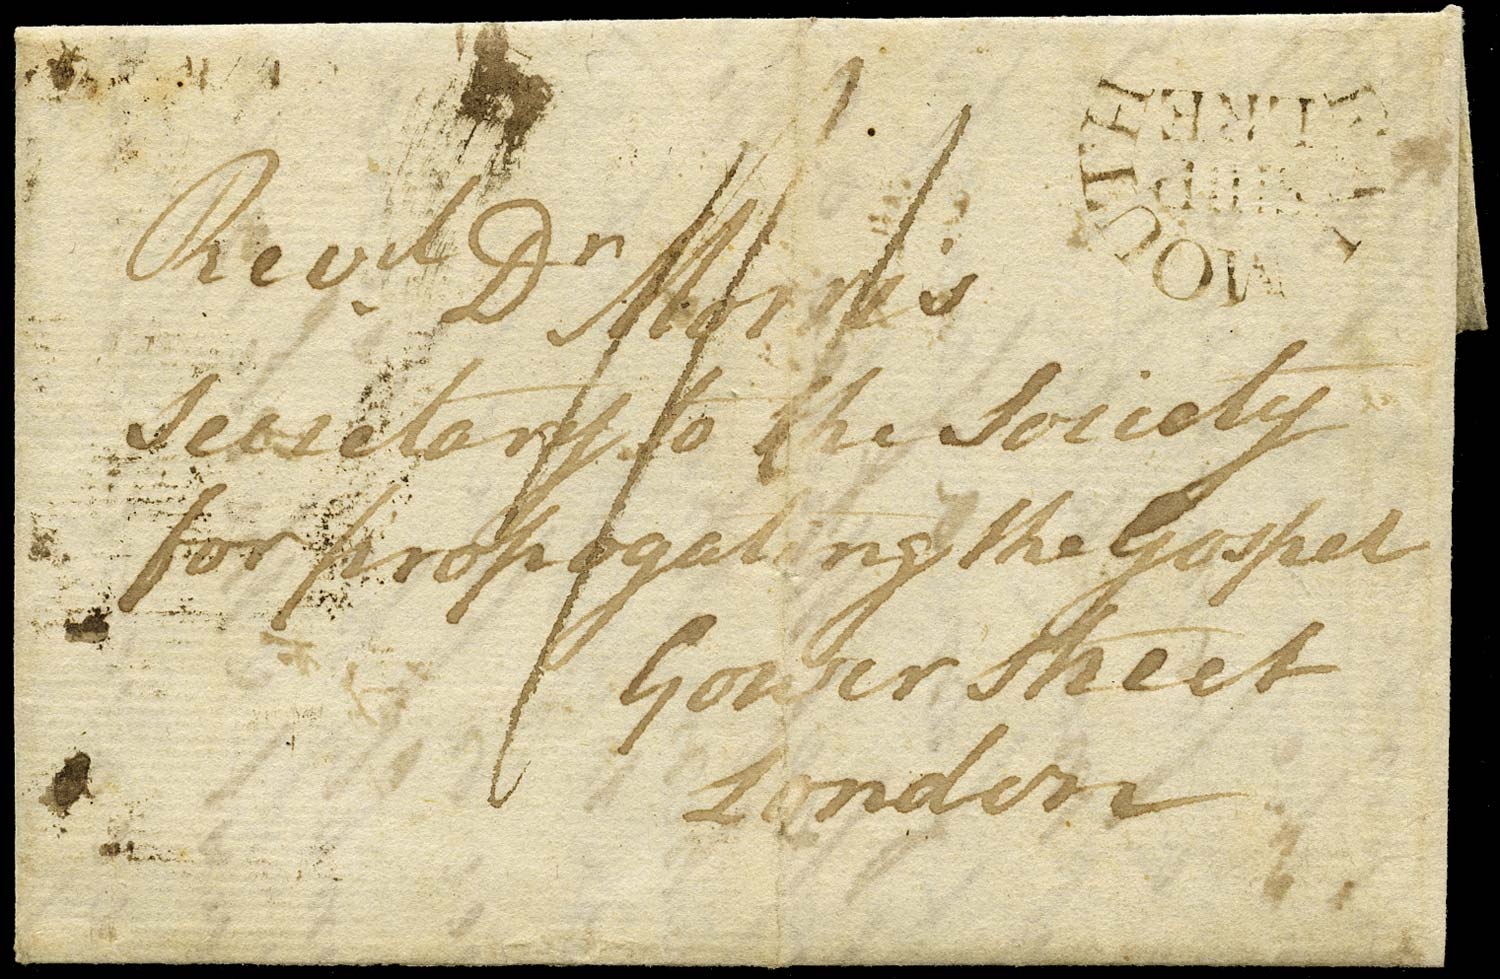 GB 1795 Pre-Stamp - Falmouth Ship Lre. (Robertson type S2)